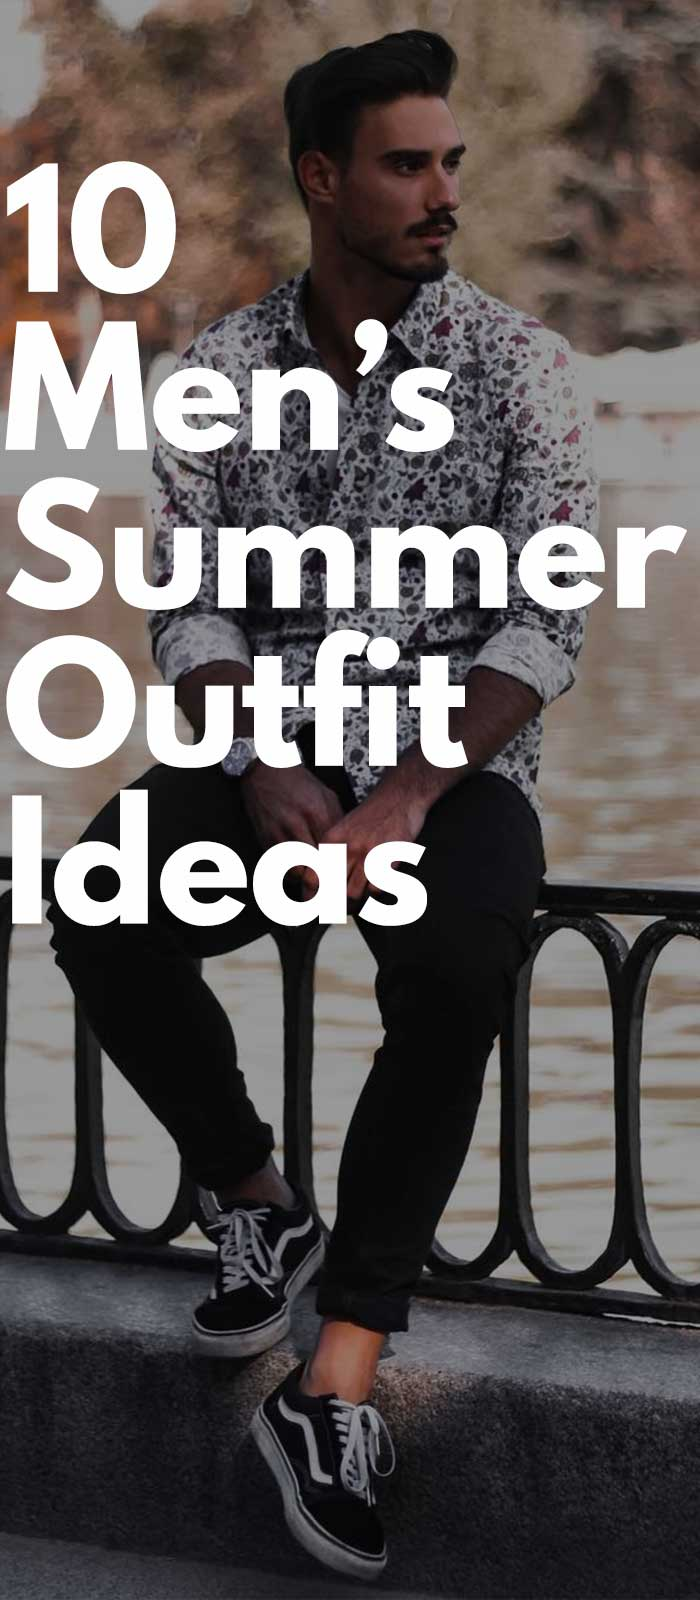 10 men's summer outfit ideas